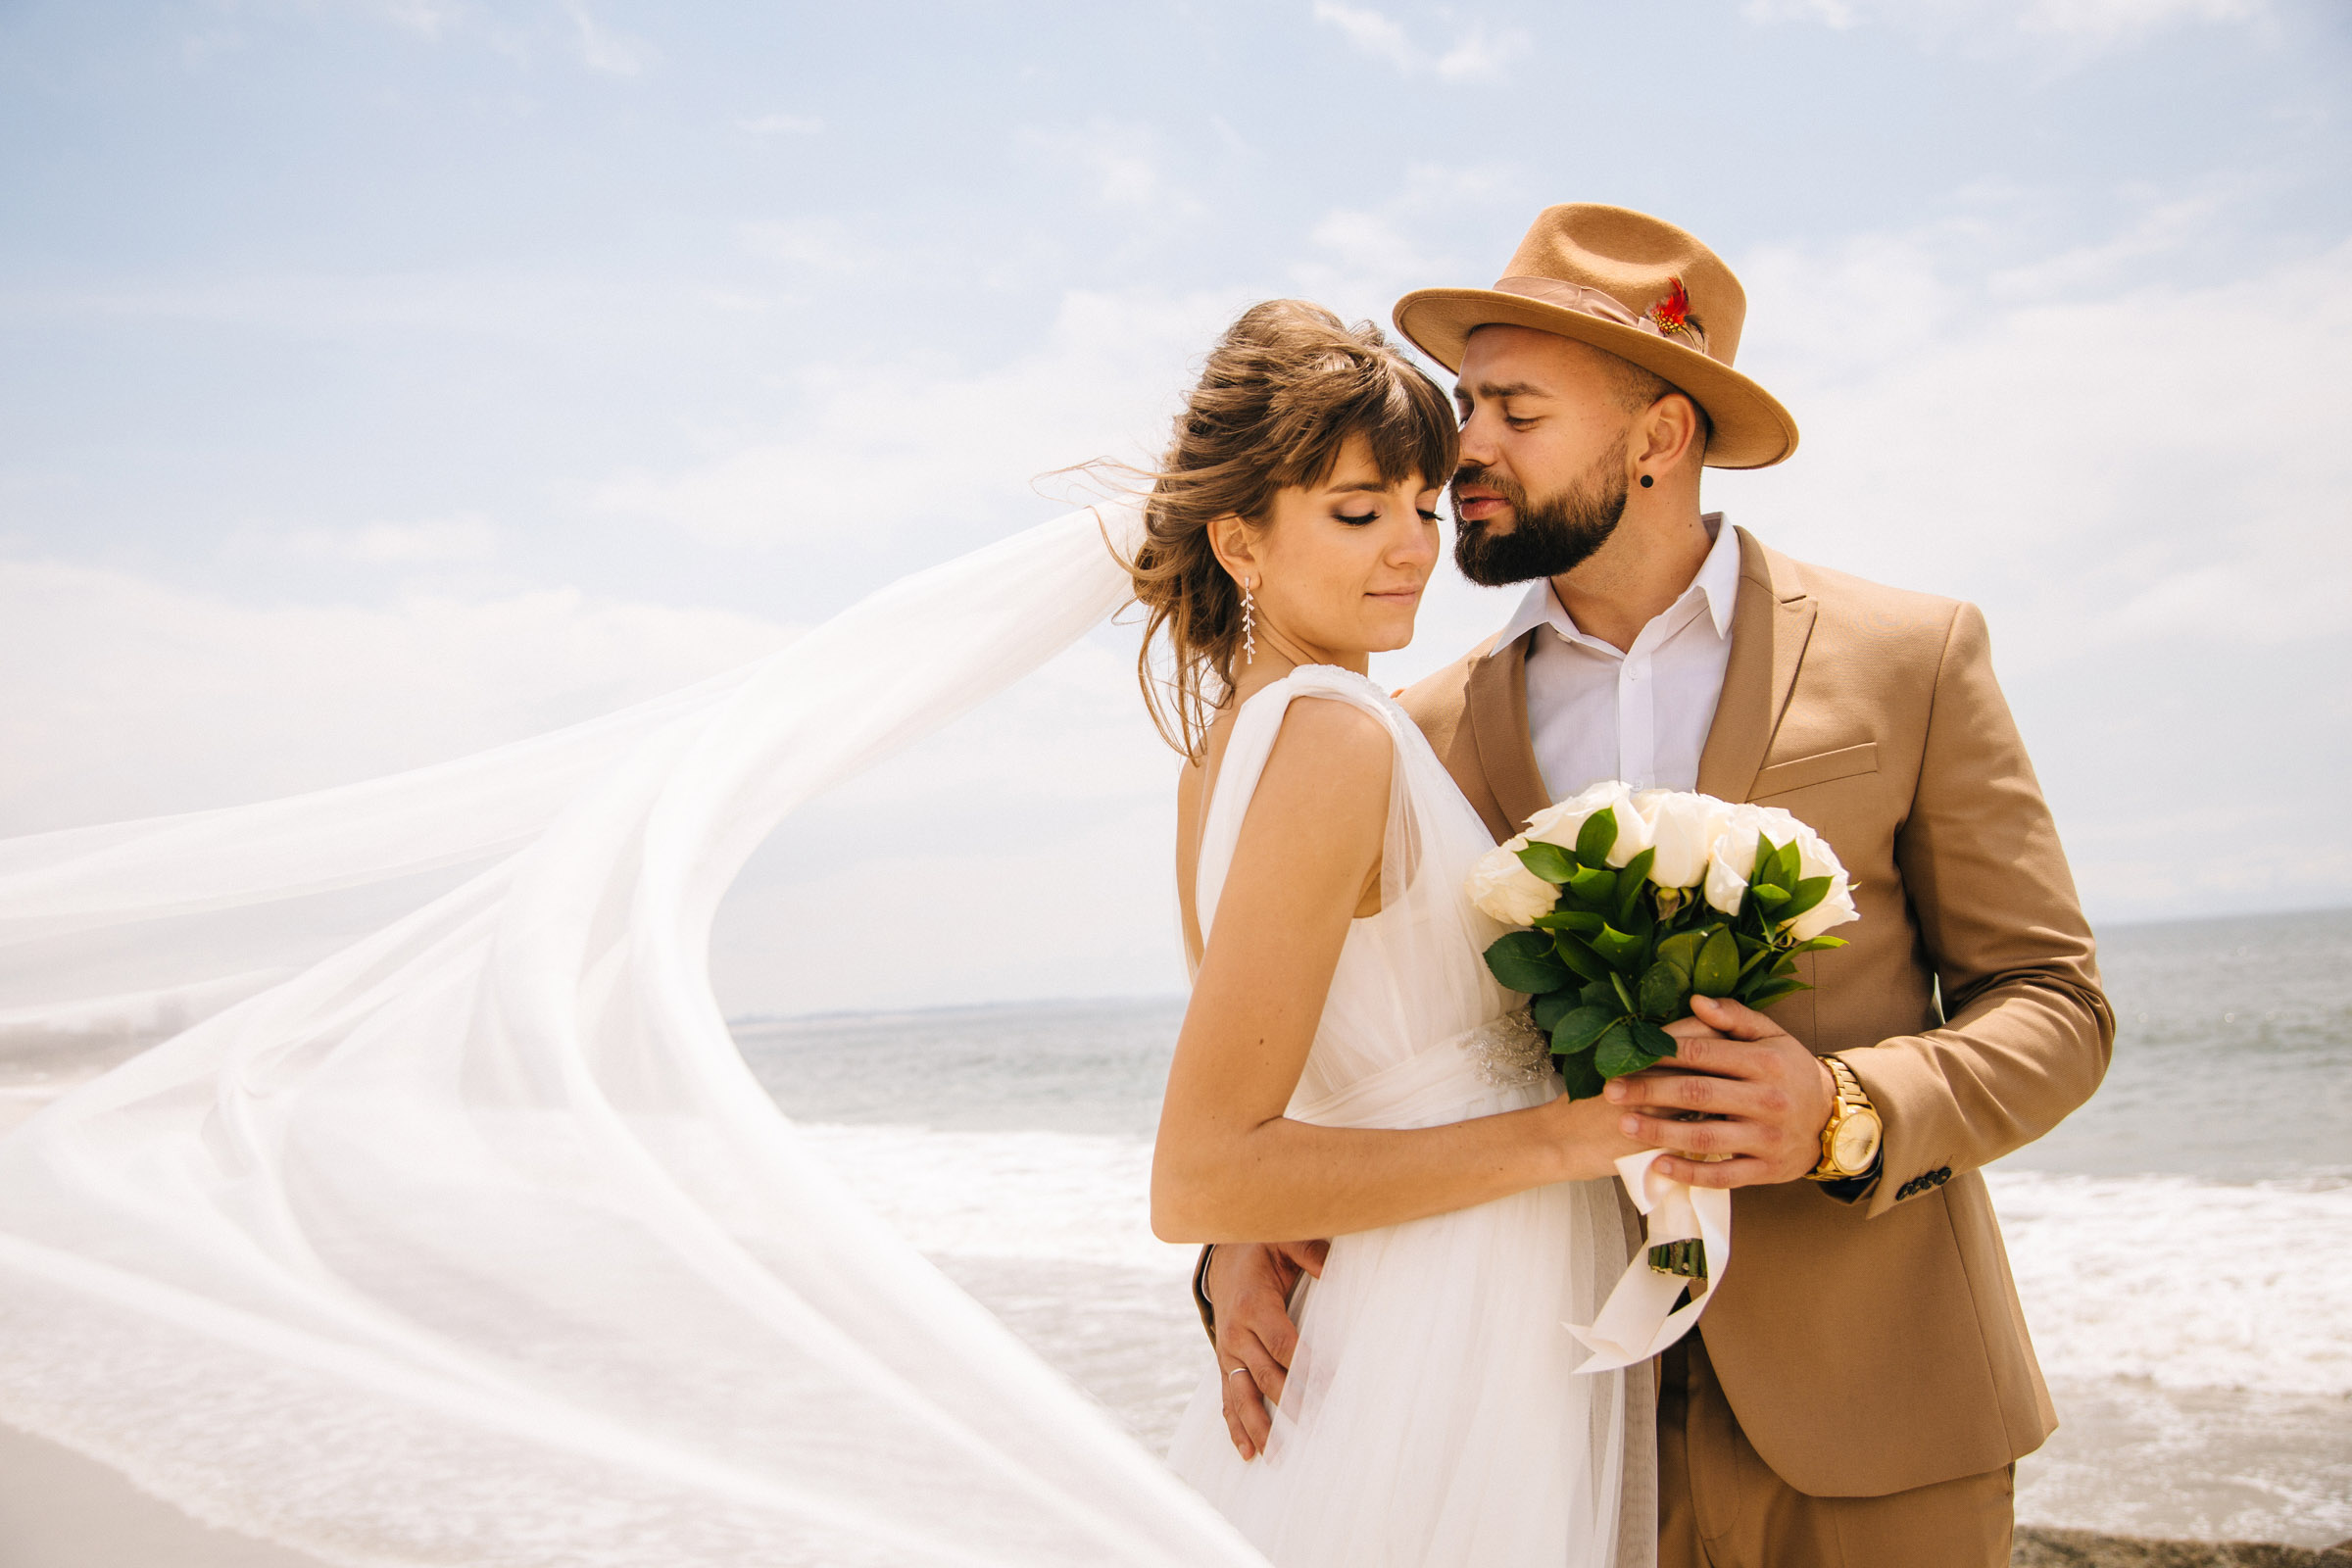 Wedding portrait of the bride and groom | elopement photography | | Los Angeles beach wedding